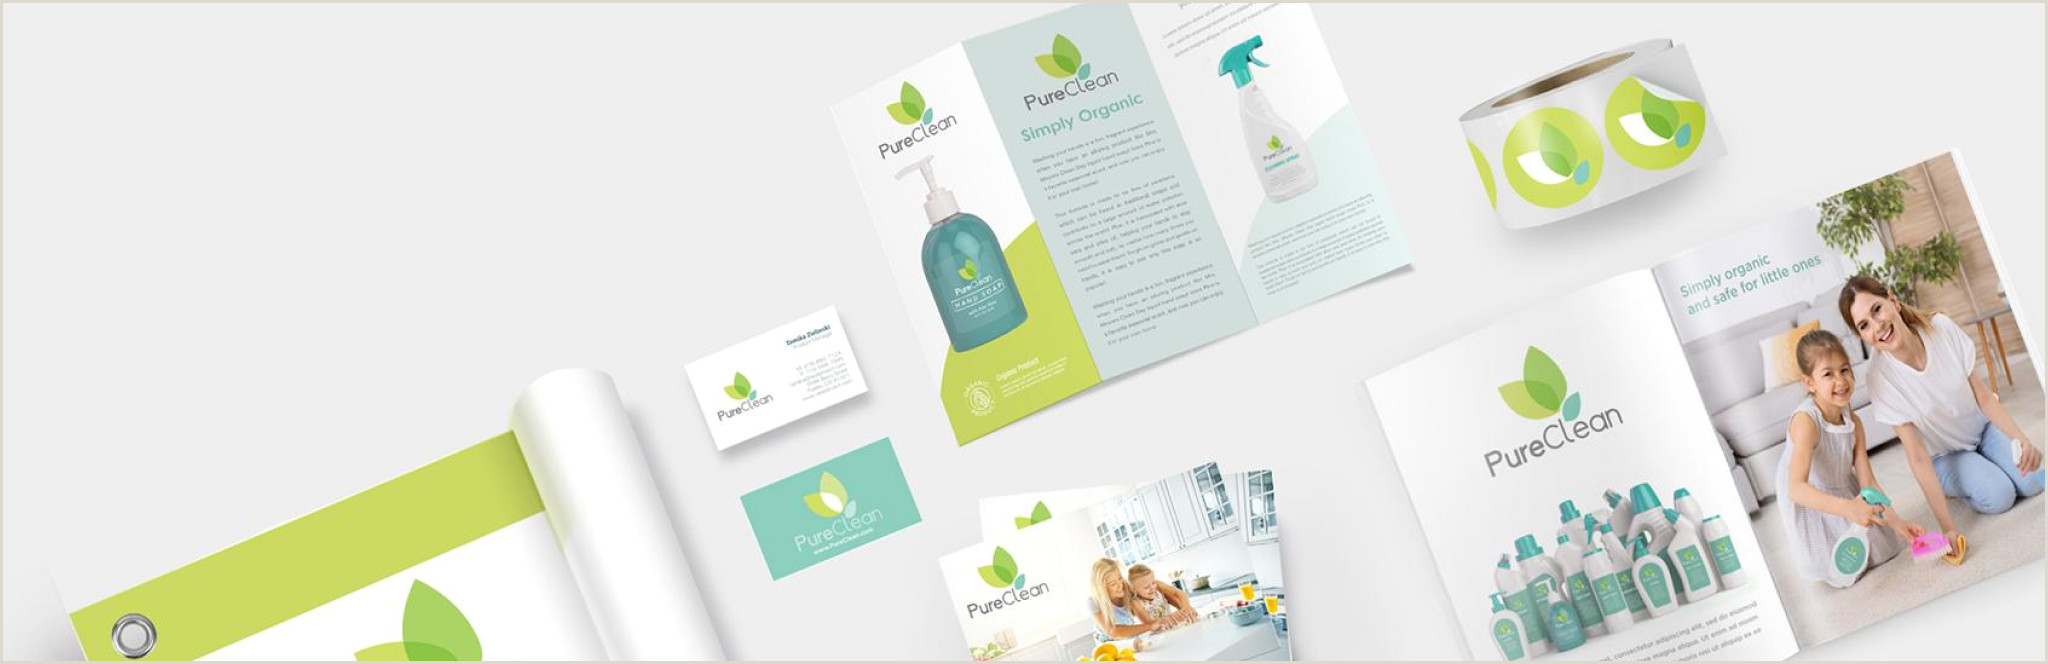 Calling Card Example Printplace High Quality Line Printing Services